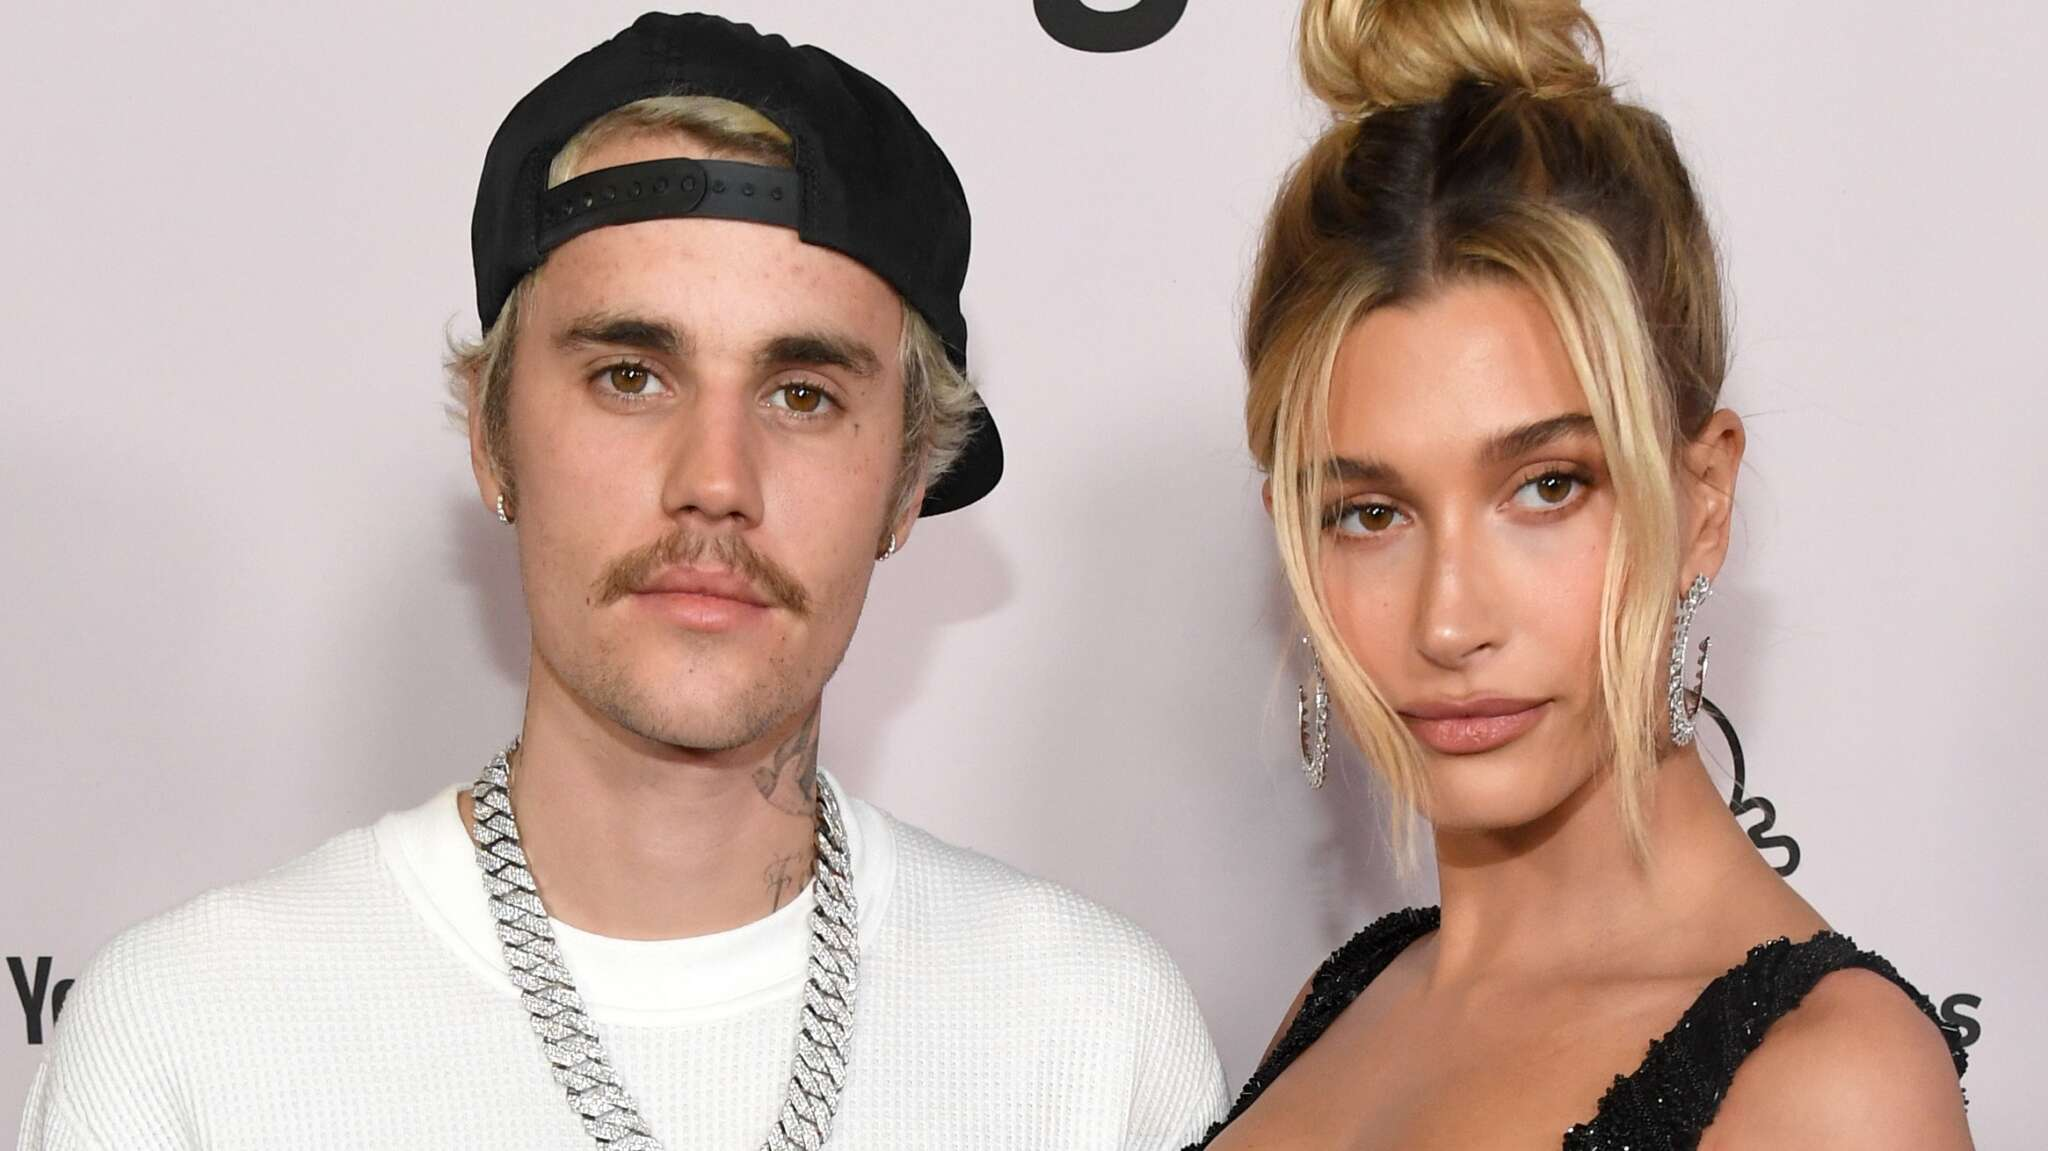 hailey-baldwin-raves-about-her-favorite-human-justin-bieber-on-his-birthday